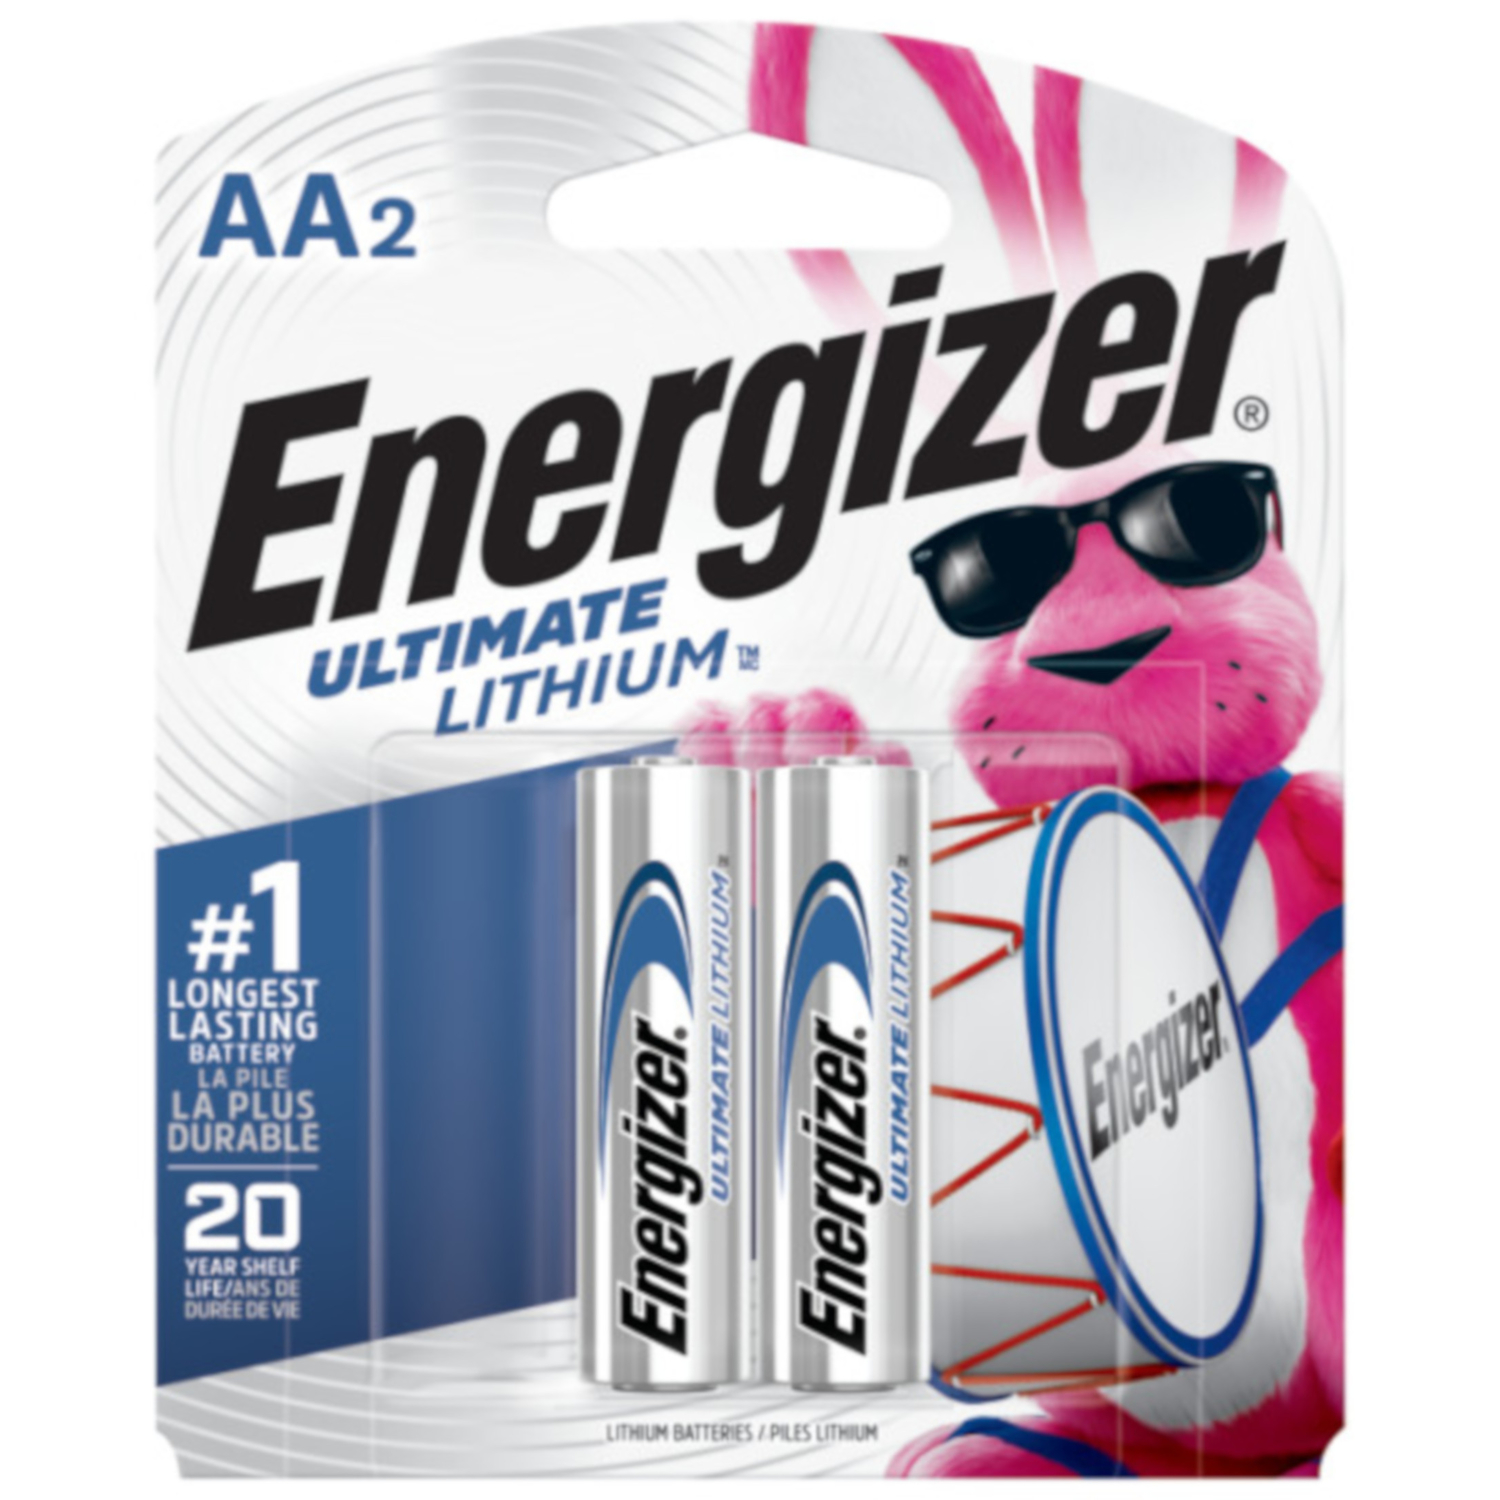 Energizer  Ultimate  Lithium  AA  Camera Battery  L91BP-2  2 pk